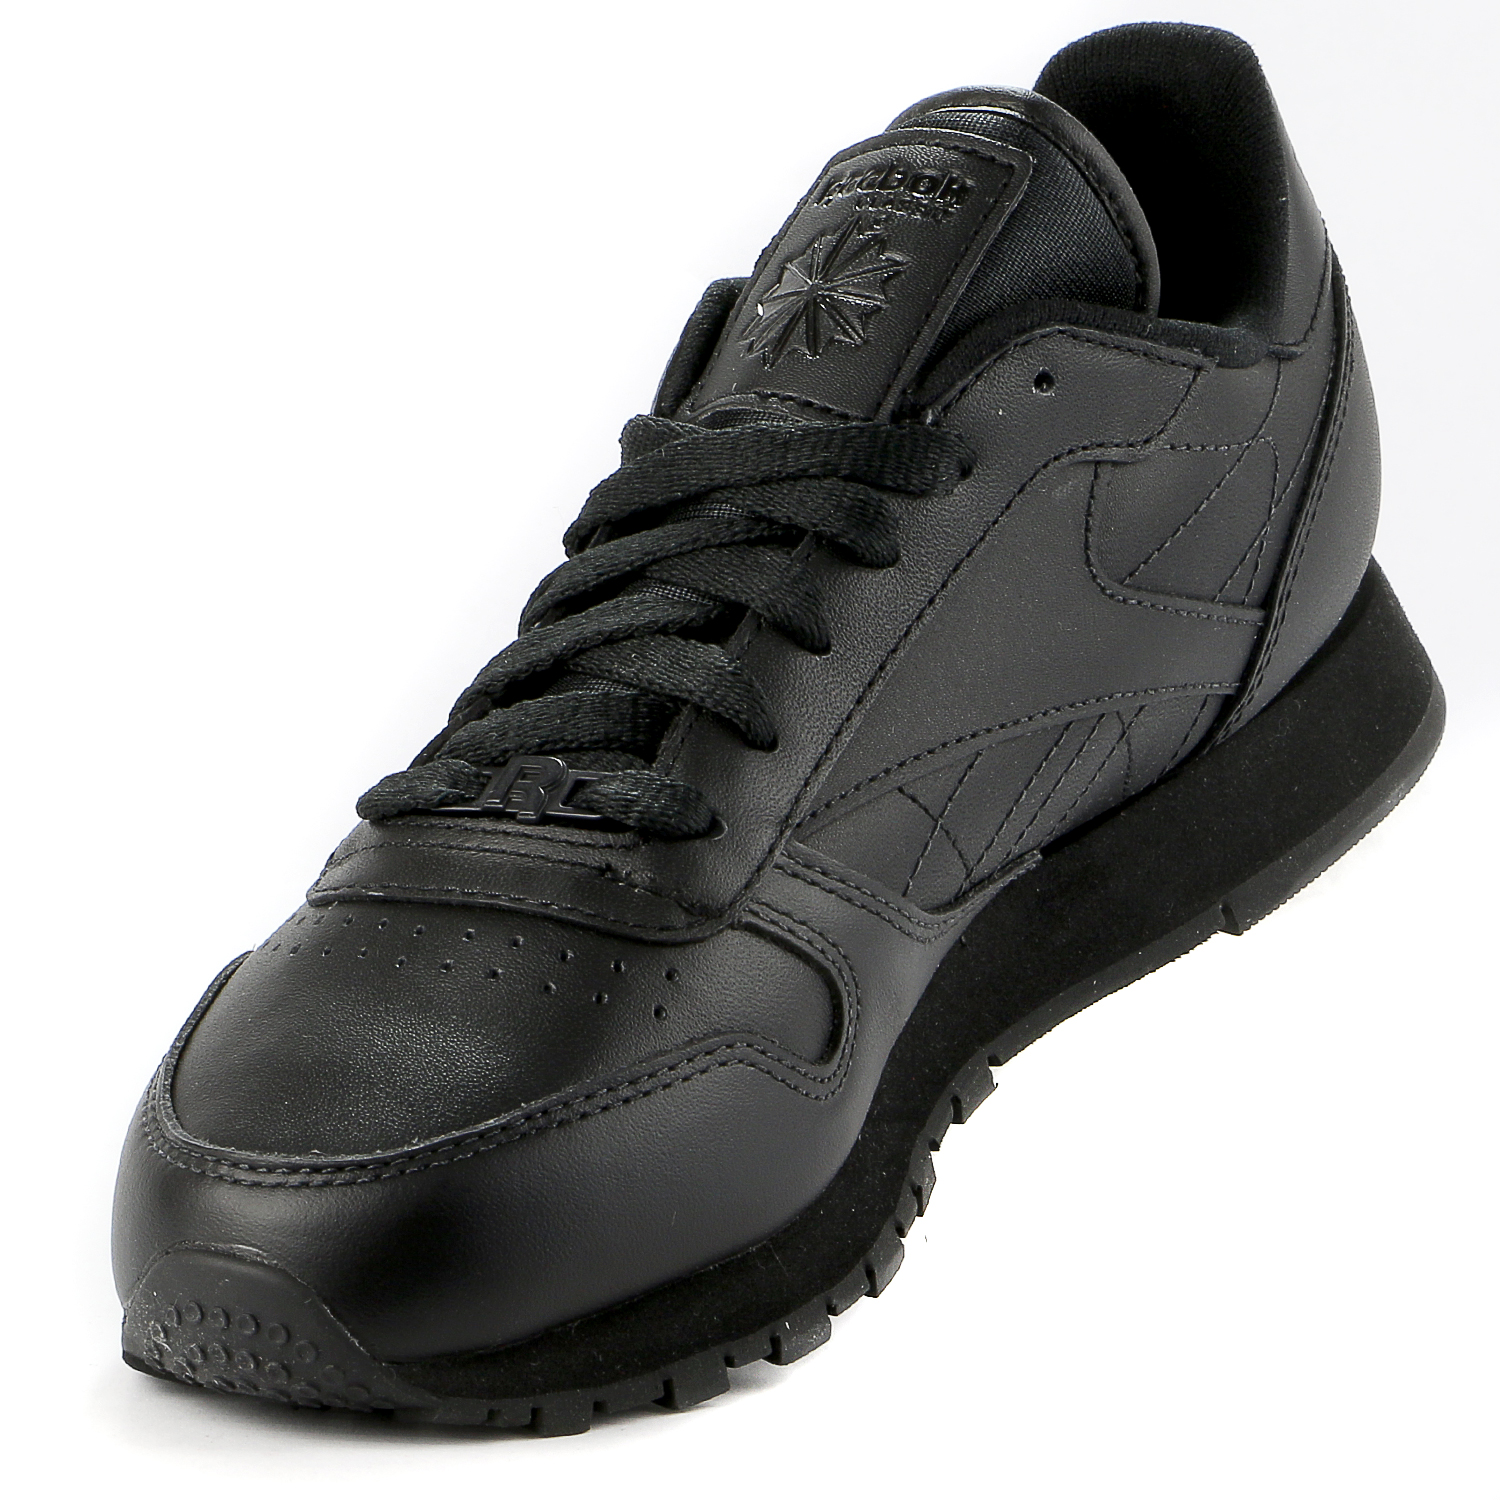 Reebok Classic Leather Casual Sneaker Shoe - Black - Womens